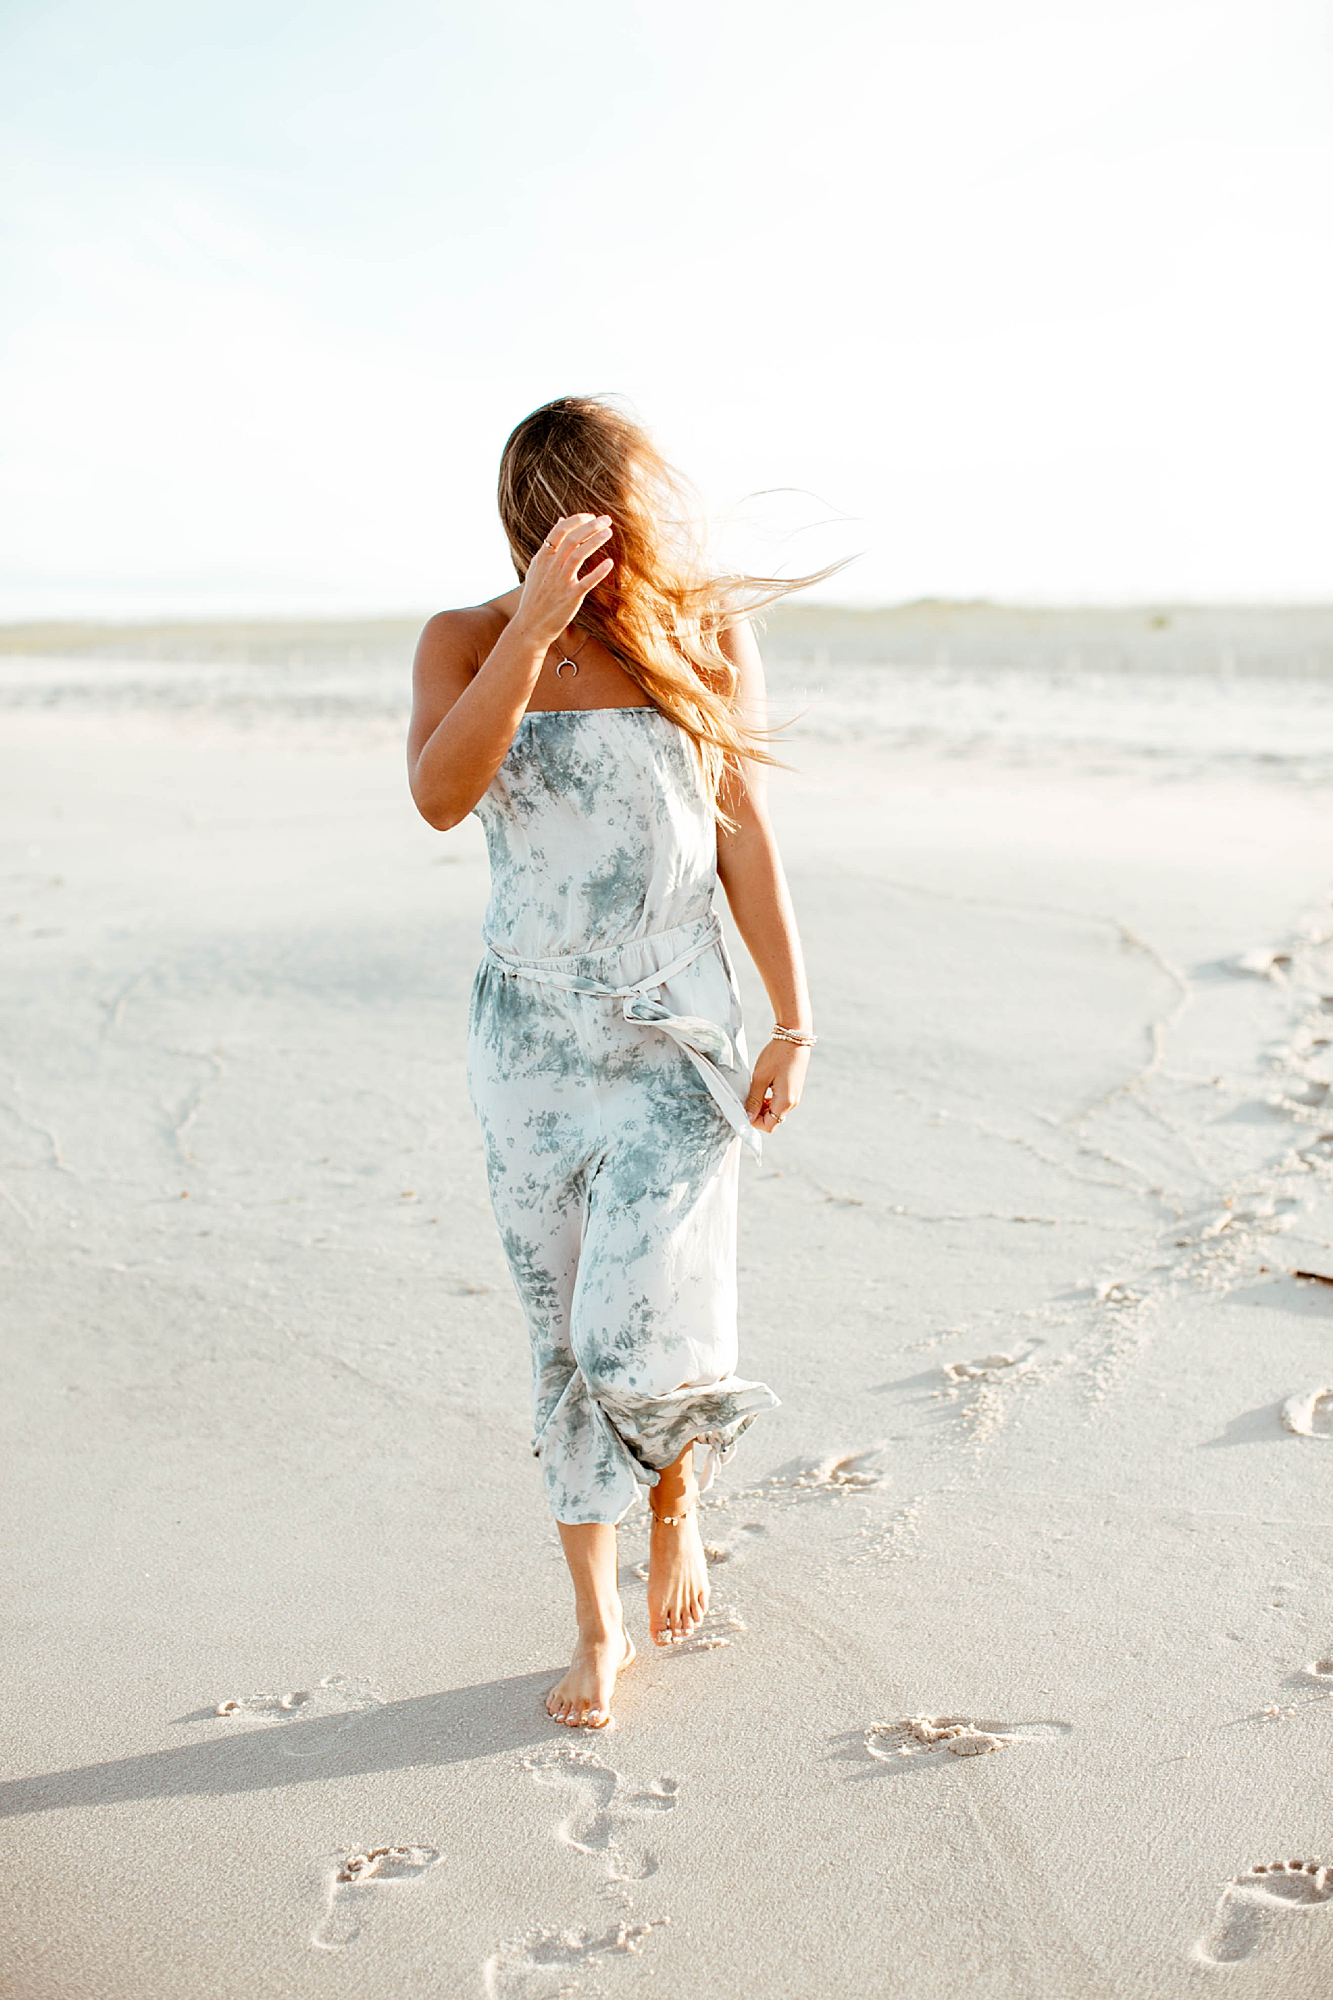 Natural and Bright Seaside Park New Jersey Boho Lifestlyle Beach Portrait Photography by Kelee Bovelle_0010.jpg